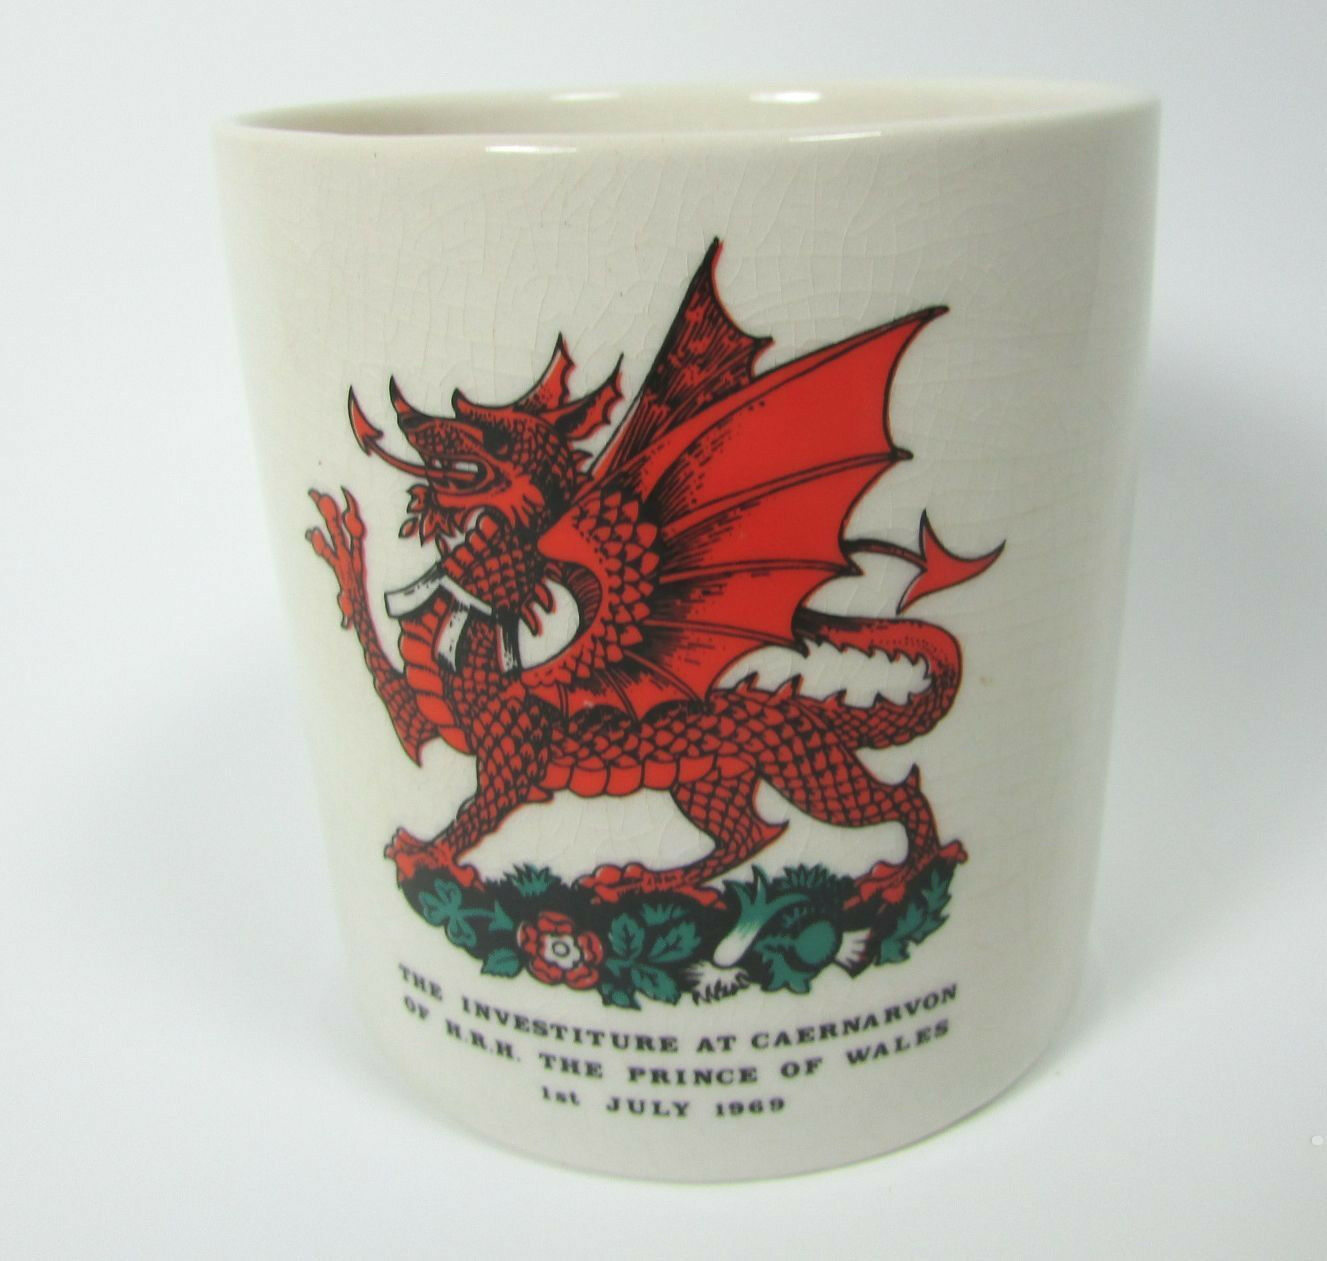 Vintage Crown Ducal Investiture at Caernarvon The Prince of Wales 1969 Mug Cup